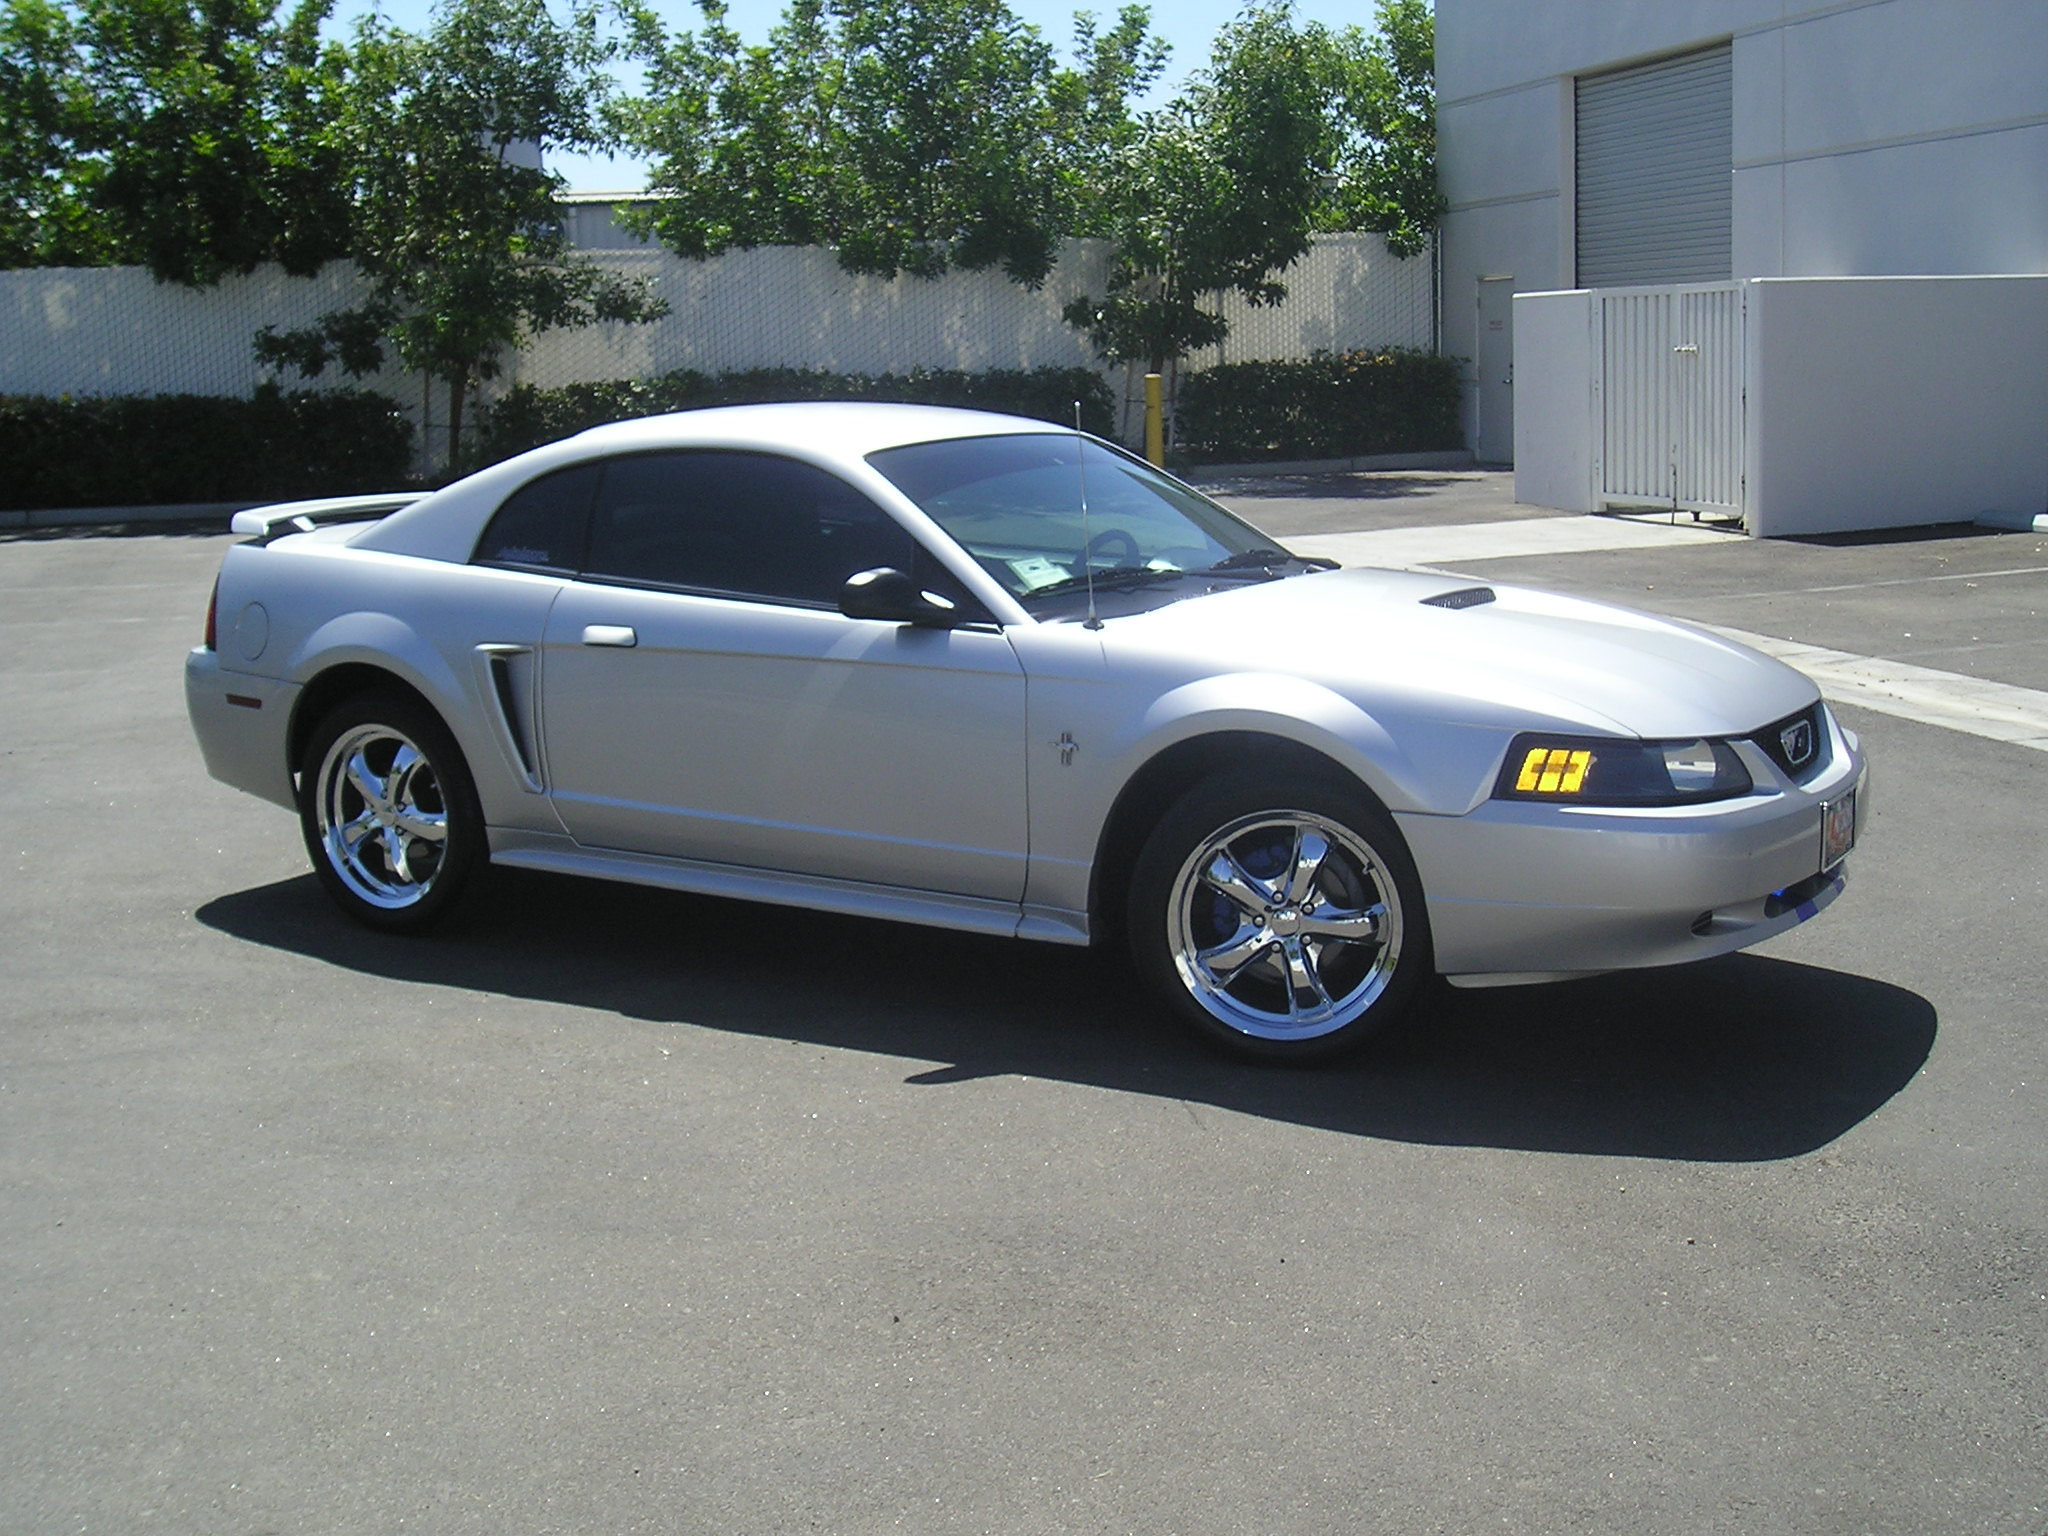 2001 Ford Mustang #3